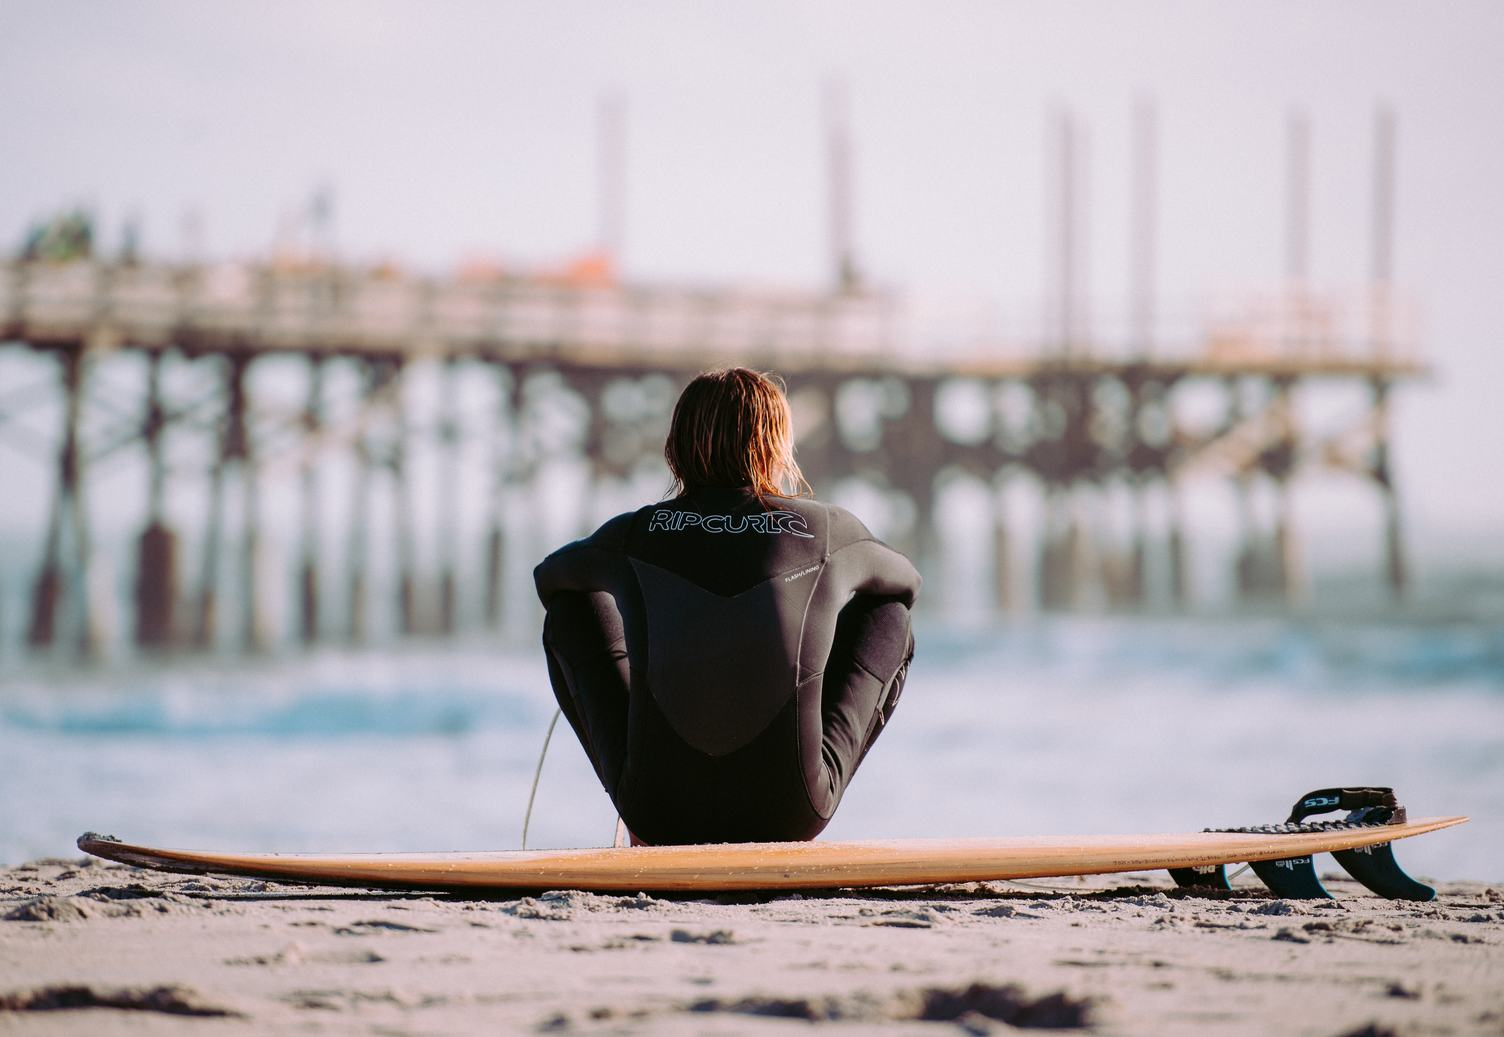 Surfer on the Beach with His Board